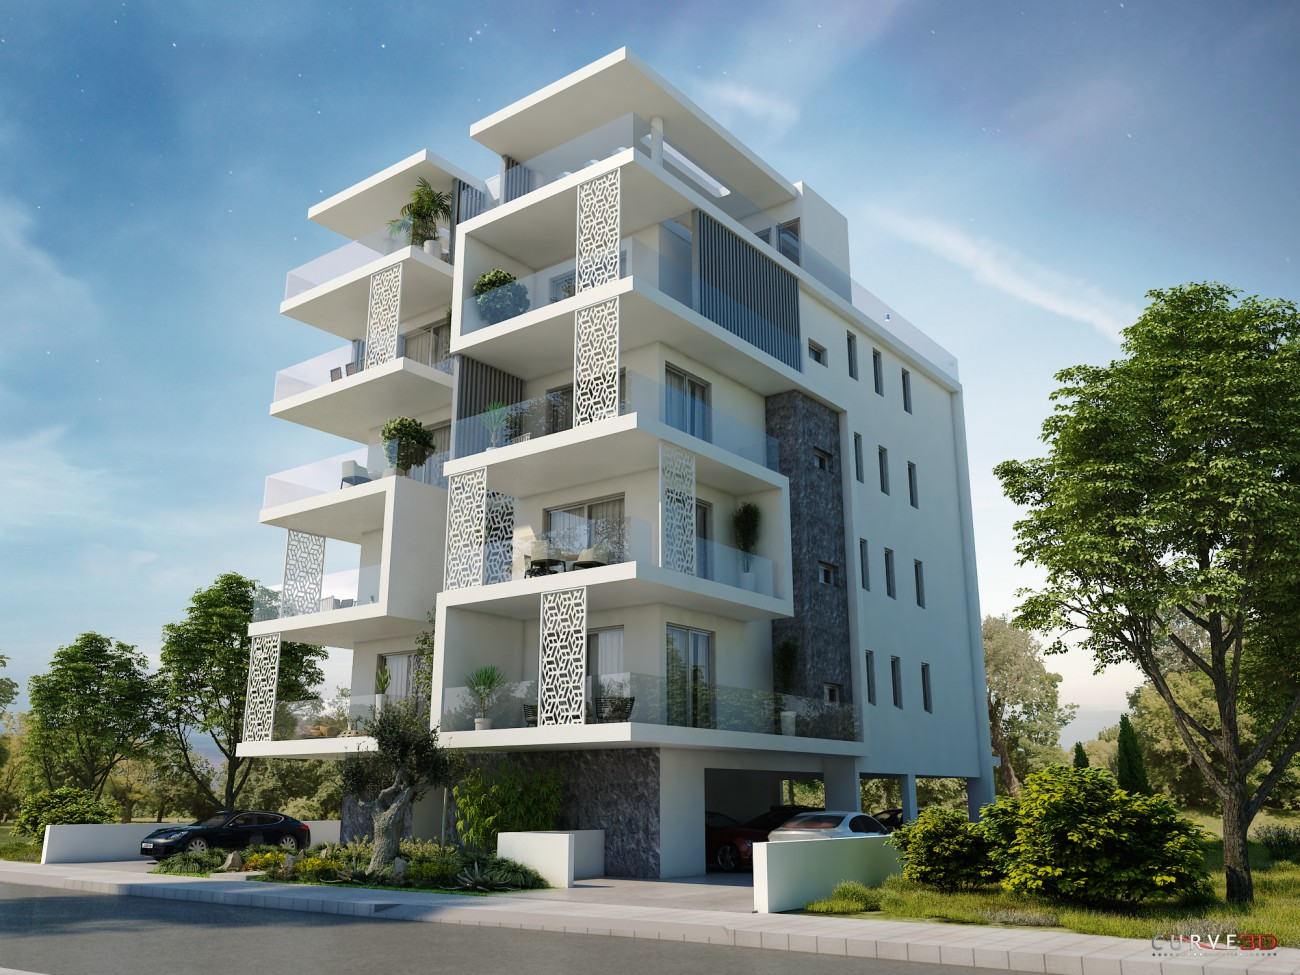 Apartment for Sale in Kamares, Larnaka, Cyprus